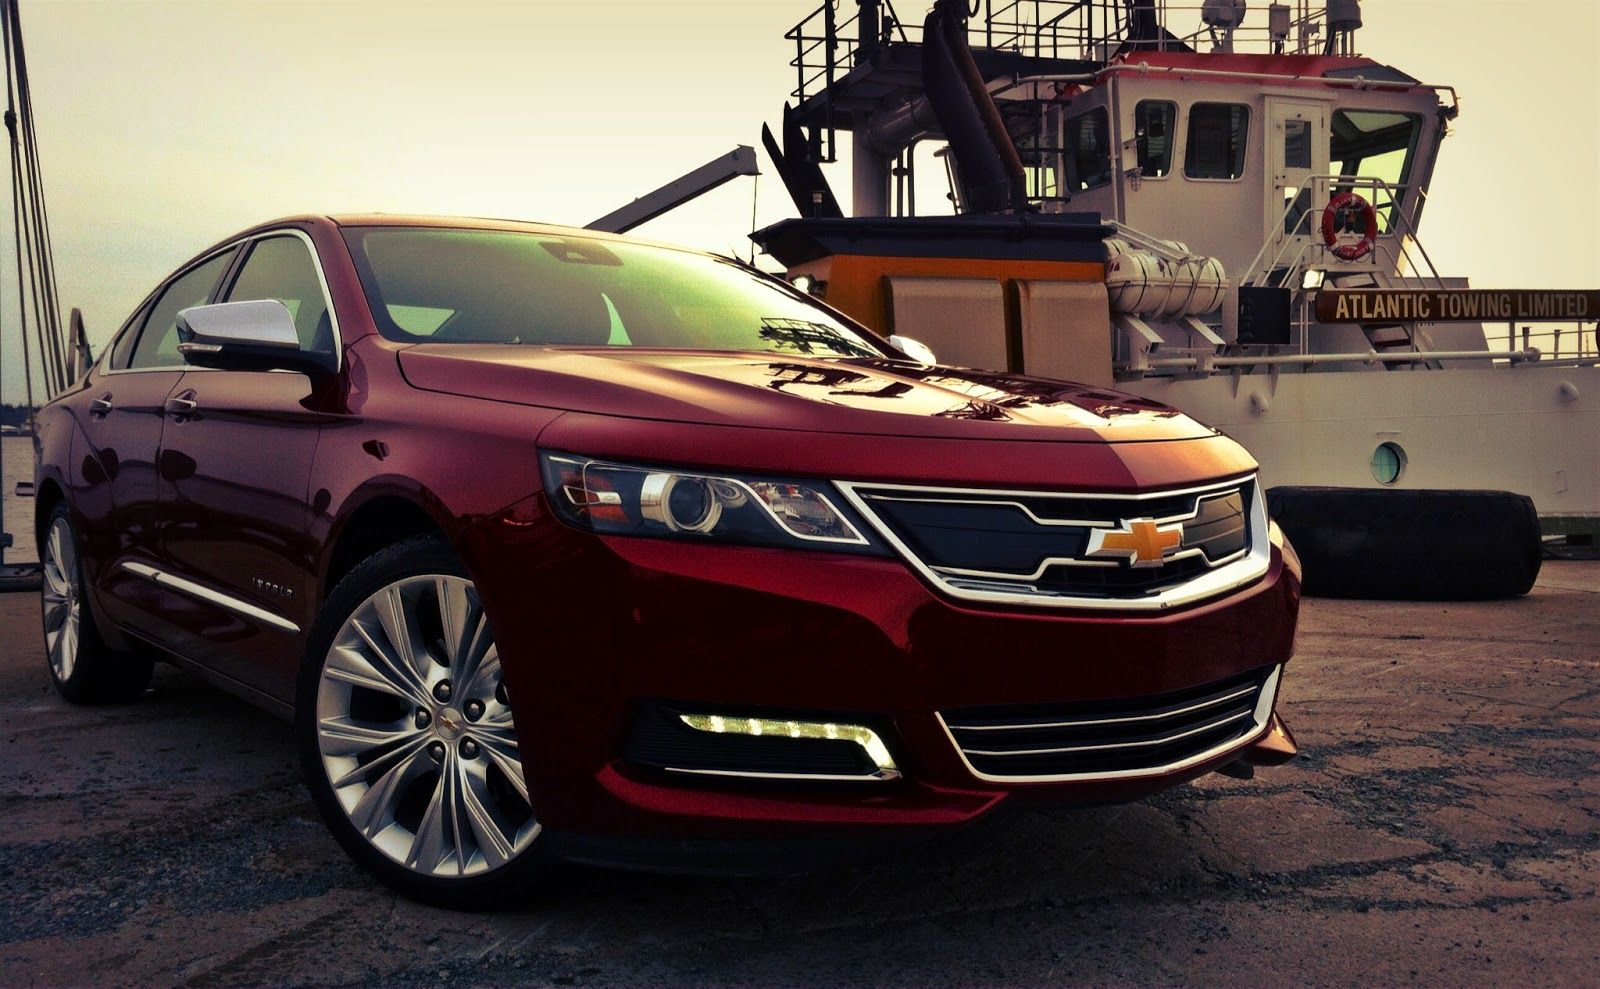 2015 Chevrolet Impala Ltz Specifications And Price Chevy Impala Impala Ltz Chevrolet Impala